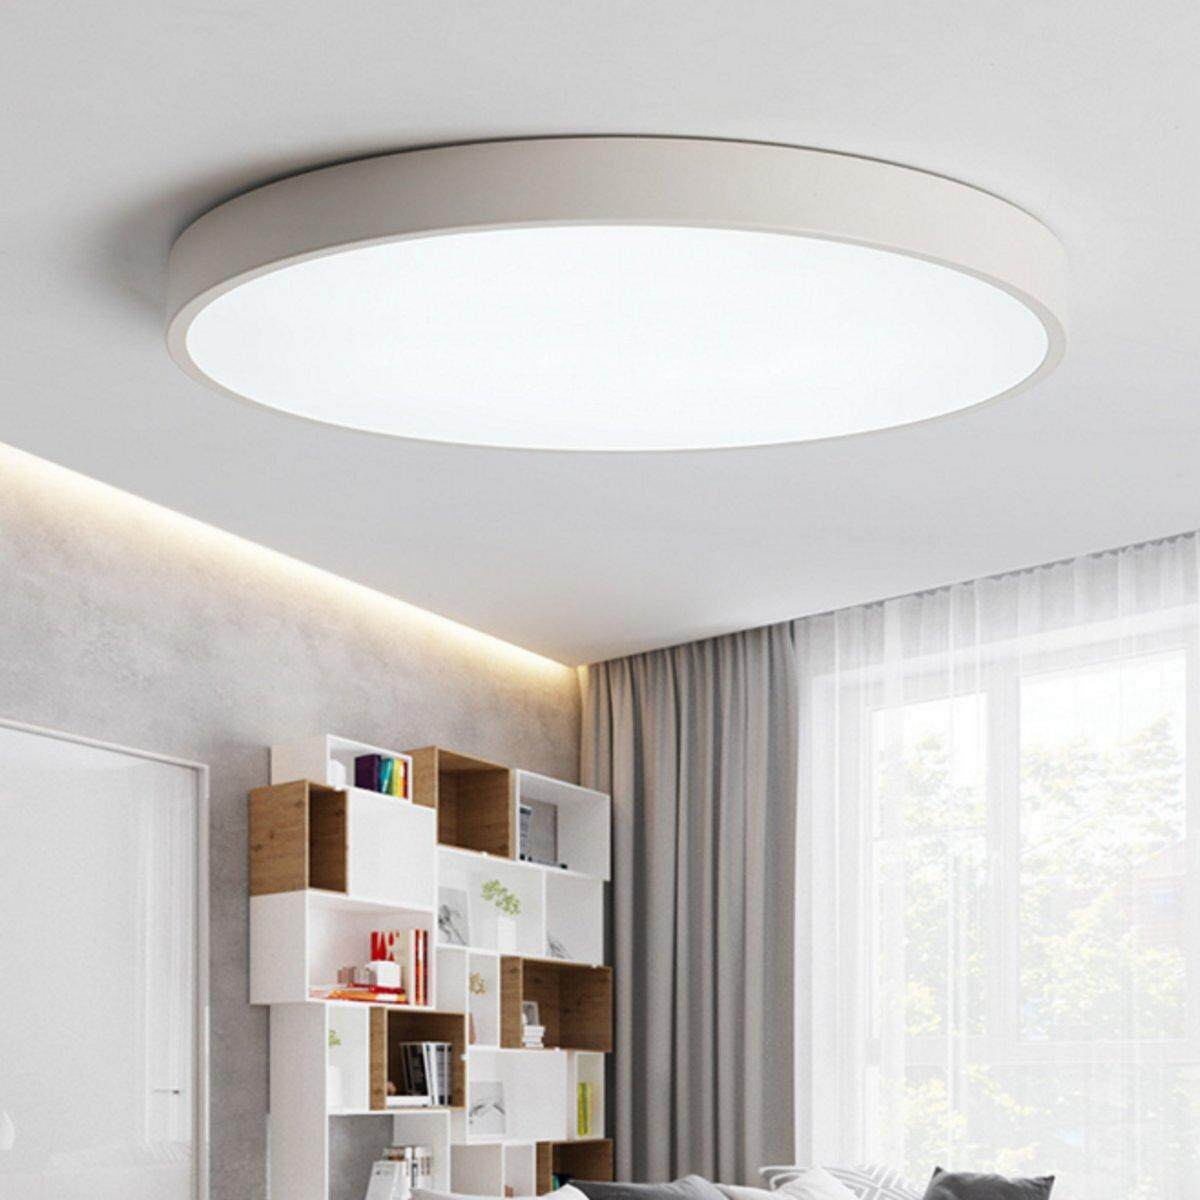 LED Ceiling Down Light Bathroom kitchen Living Lamp Day # White light 12W